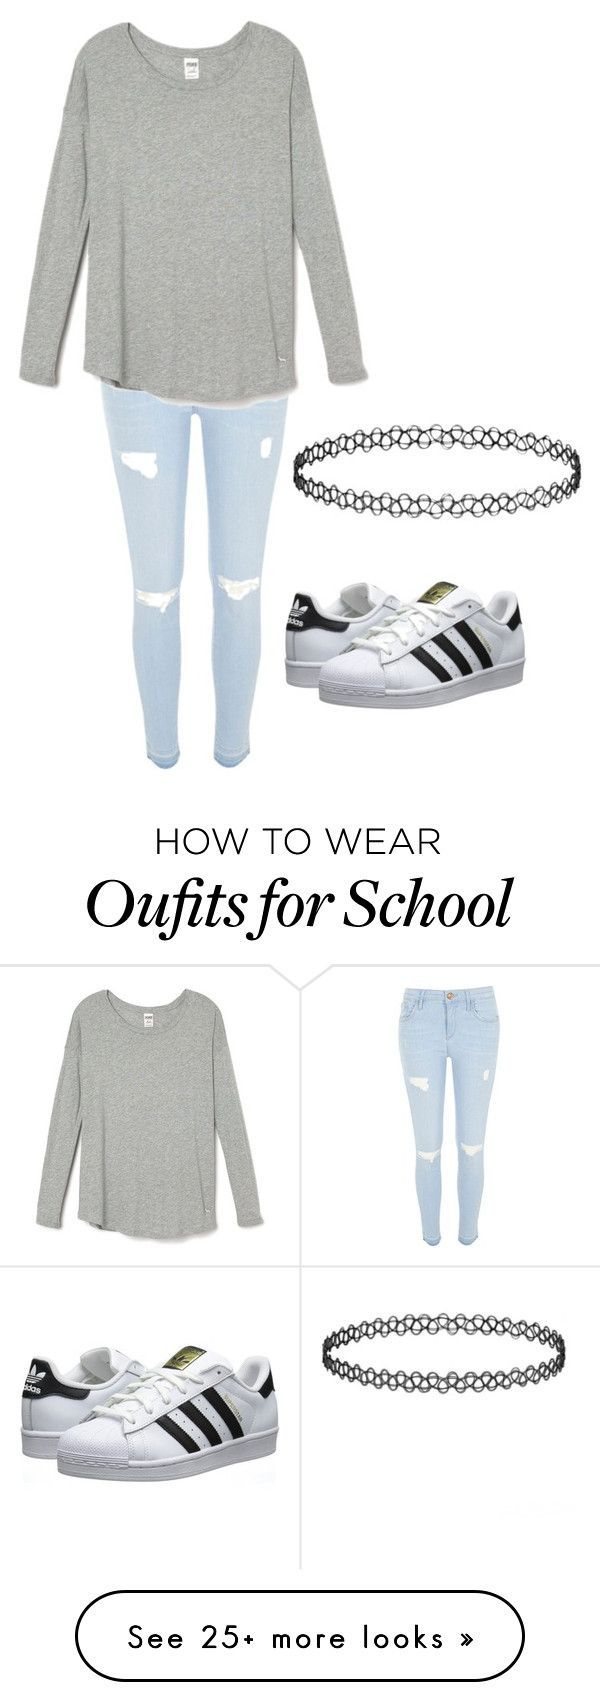 """""""school"""" by gabby-angelone on Polyvore featuring River Island, adidas Originals, women's clothing, women's fashion, women, female, woman, misses and juniors"""